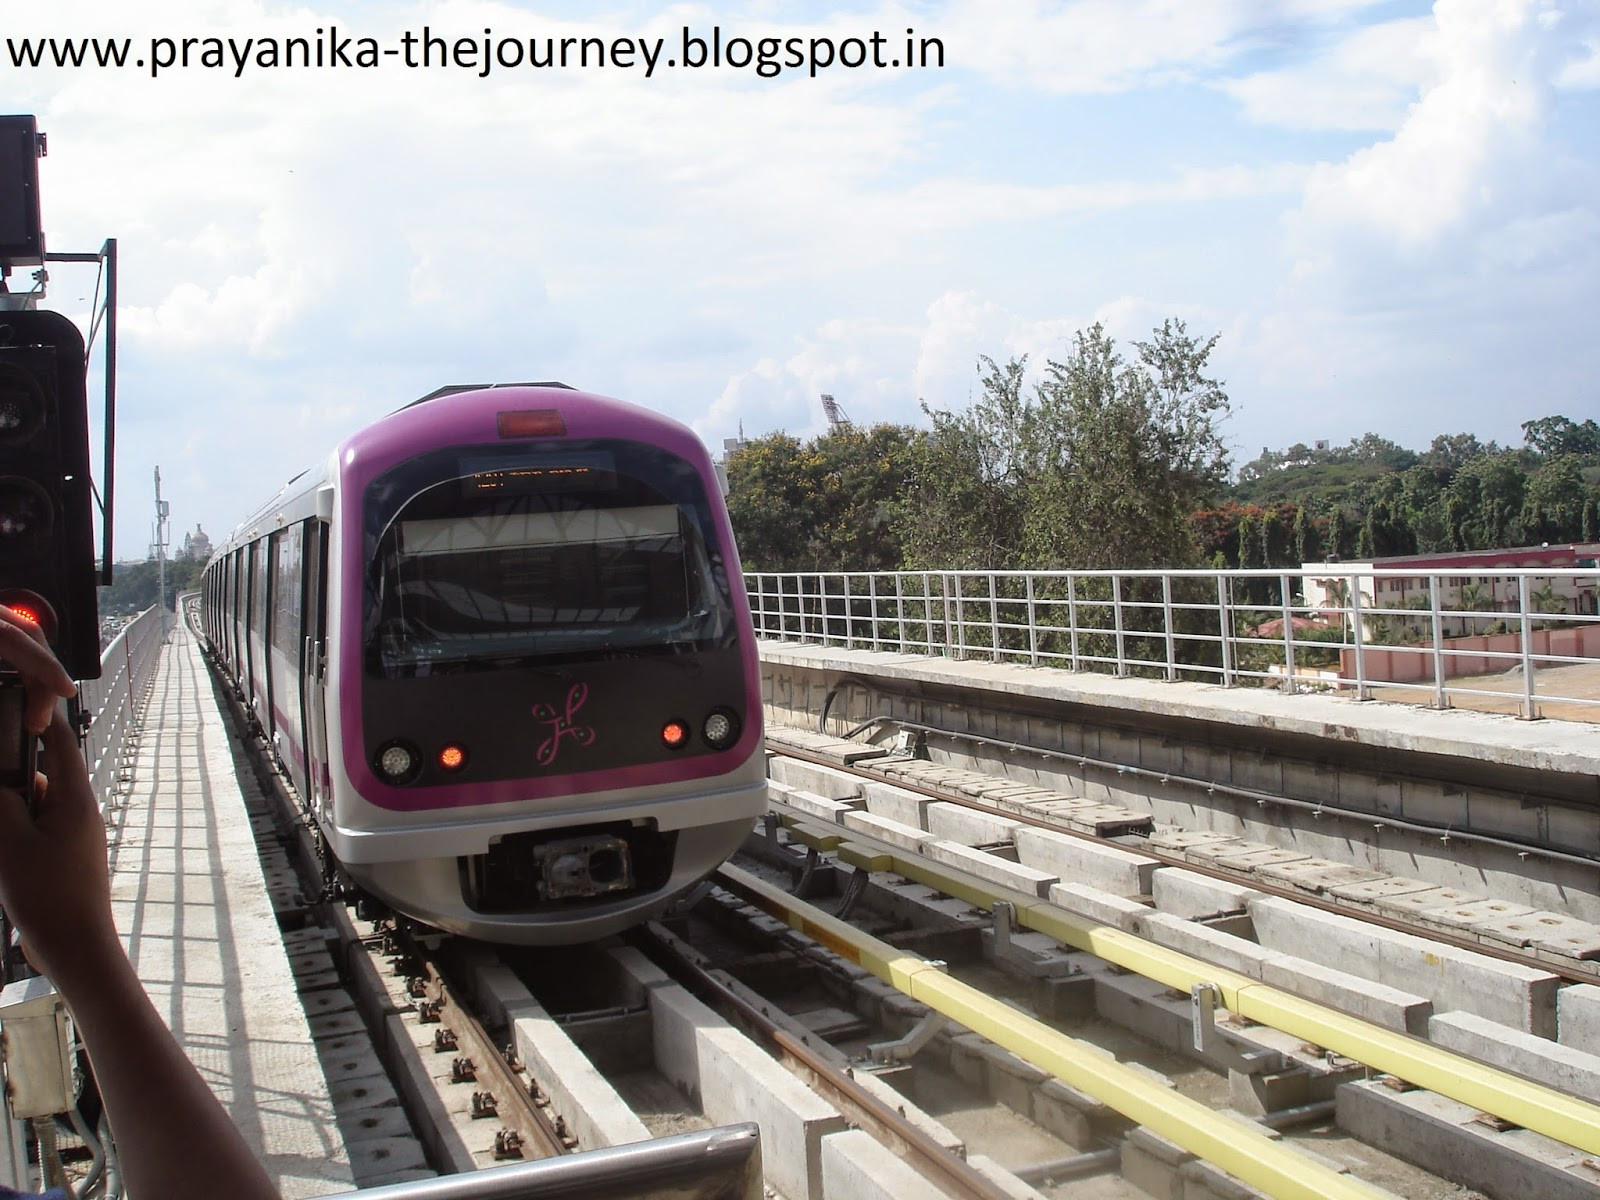 prayanika the journey my experience in bengaluru metro i just had a view on the inside infrastructure of the train train was air conditioned though there were side seating arrangements large proportion of the